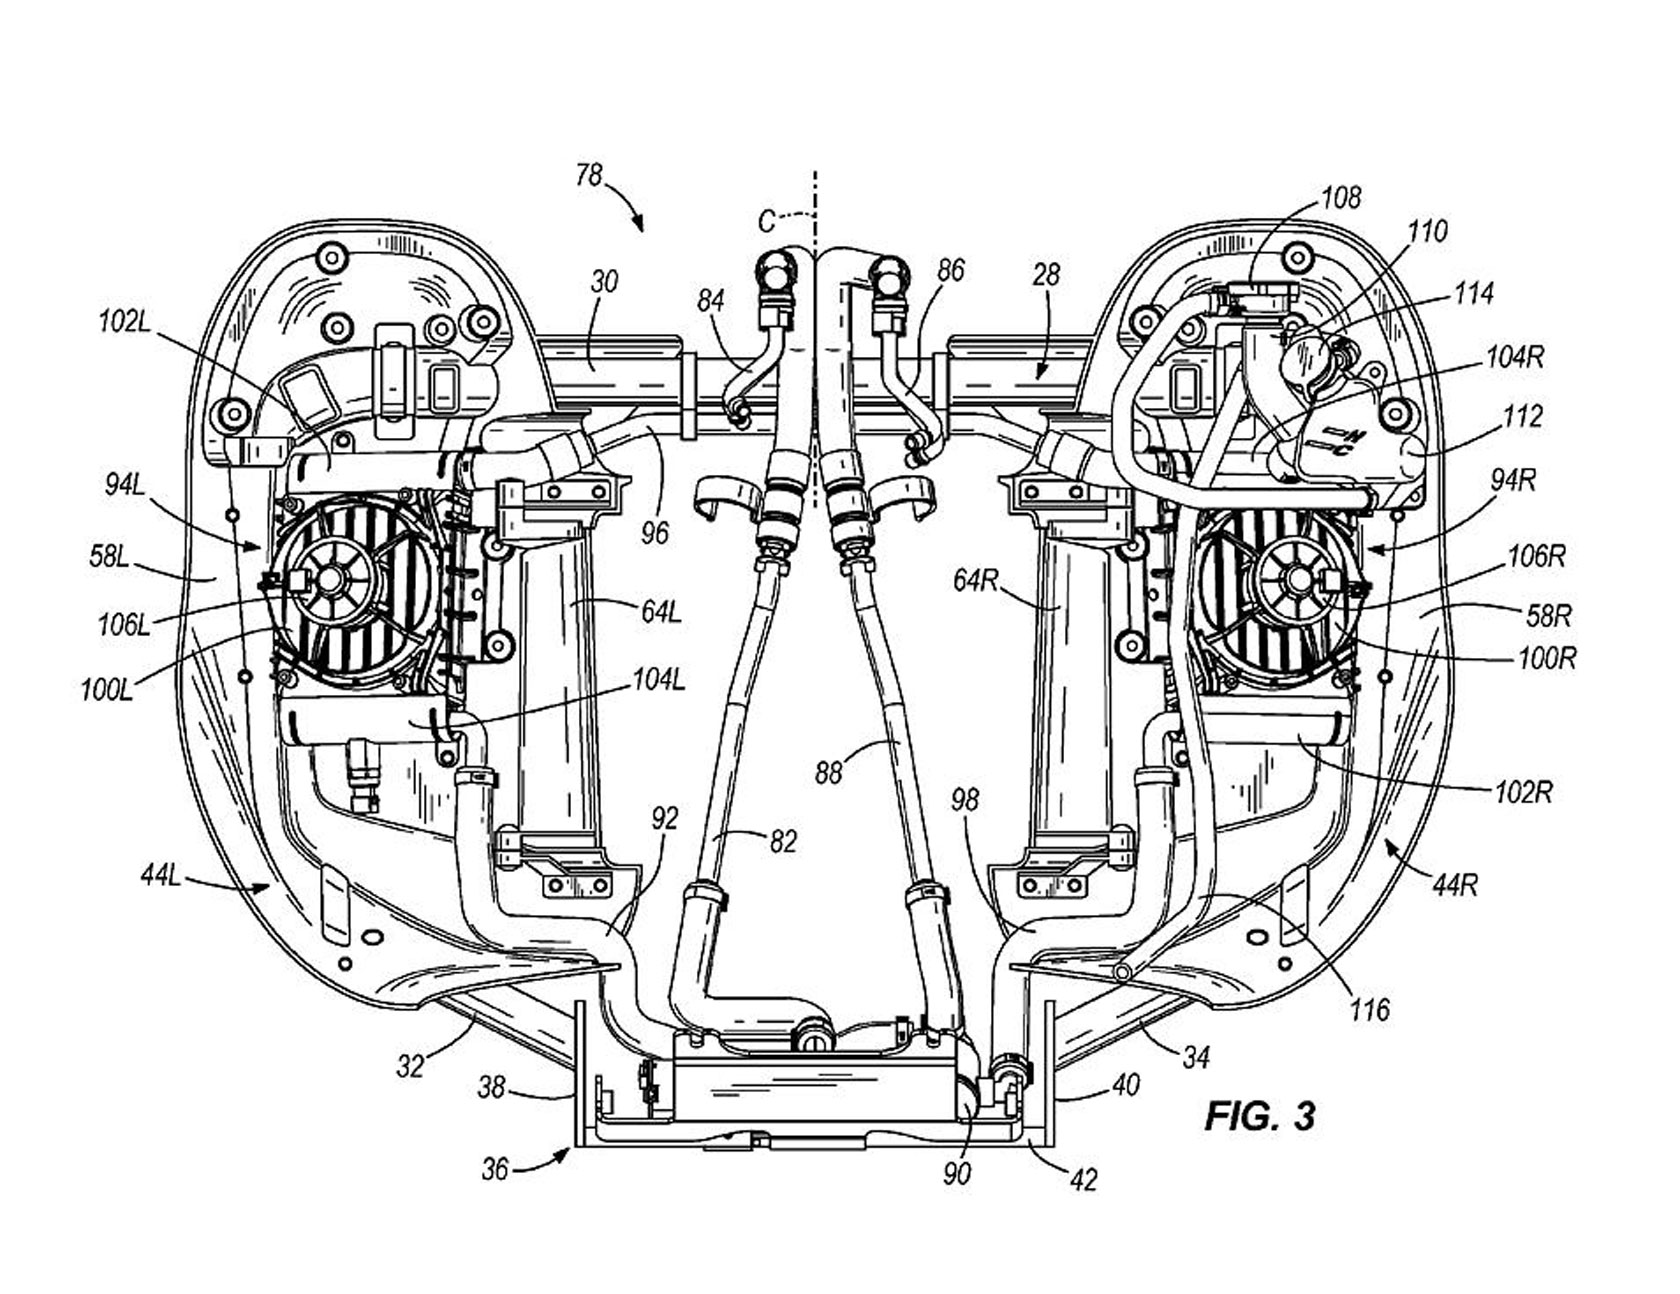 2011 Harley Davidson Water Cooled Engine Us Patent Concept Spy Shots Road King Exhaust Moreover Parts Diagram